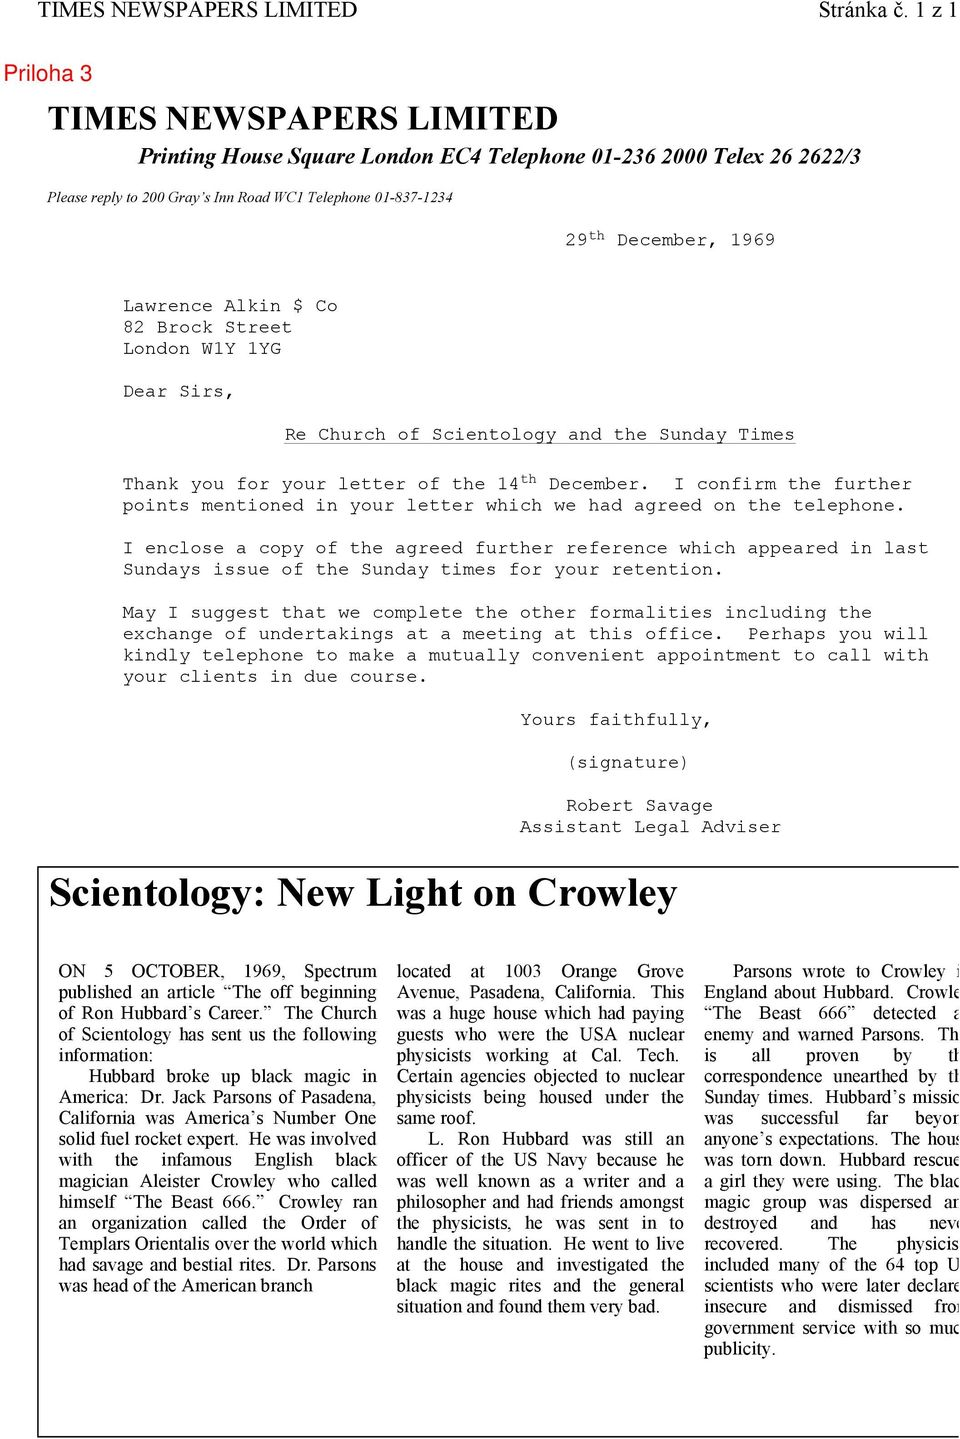 Lawrence Alkin $ Co 82 Brock Street London W1Y 1YG Dear Sirs, Re Church of Scientology and the Sunday Times Thank you for your letter of the 14 th December.